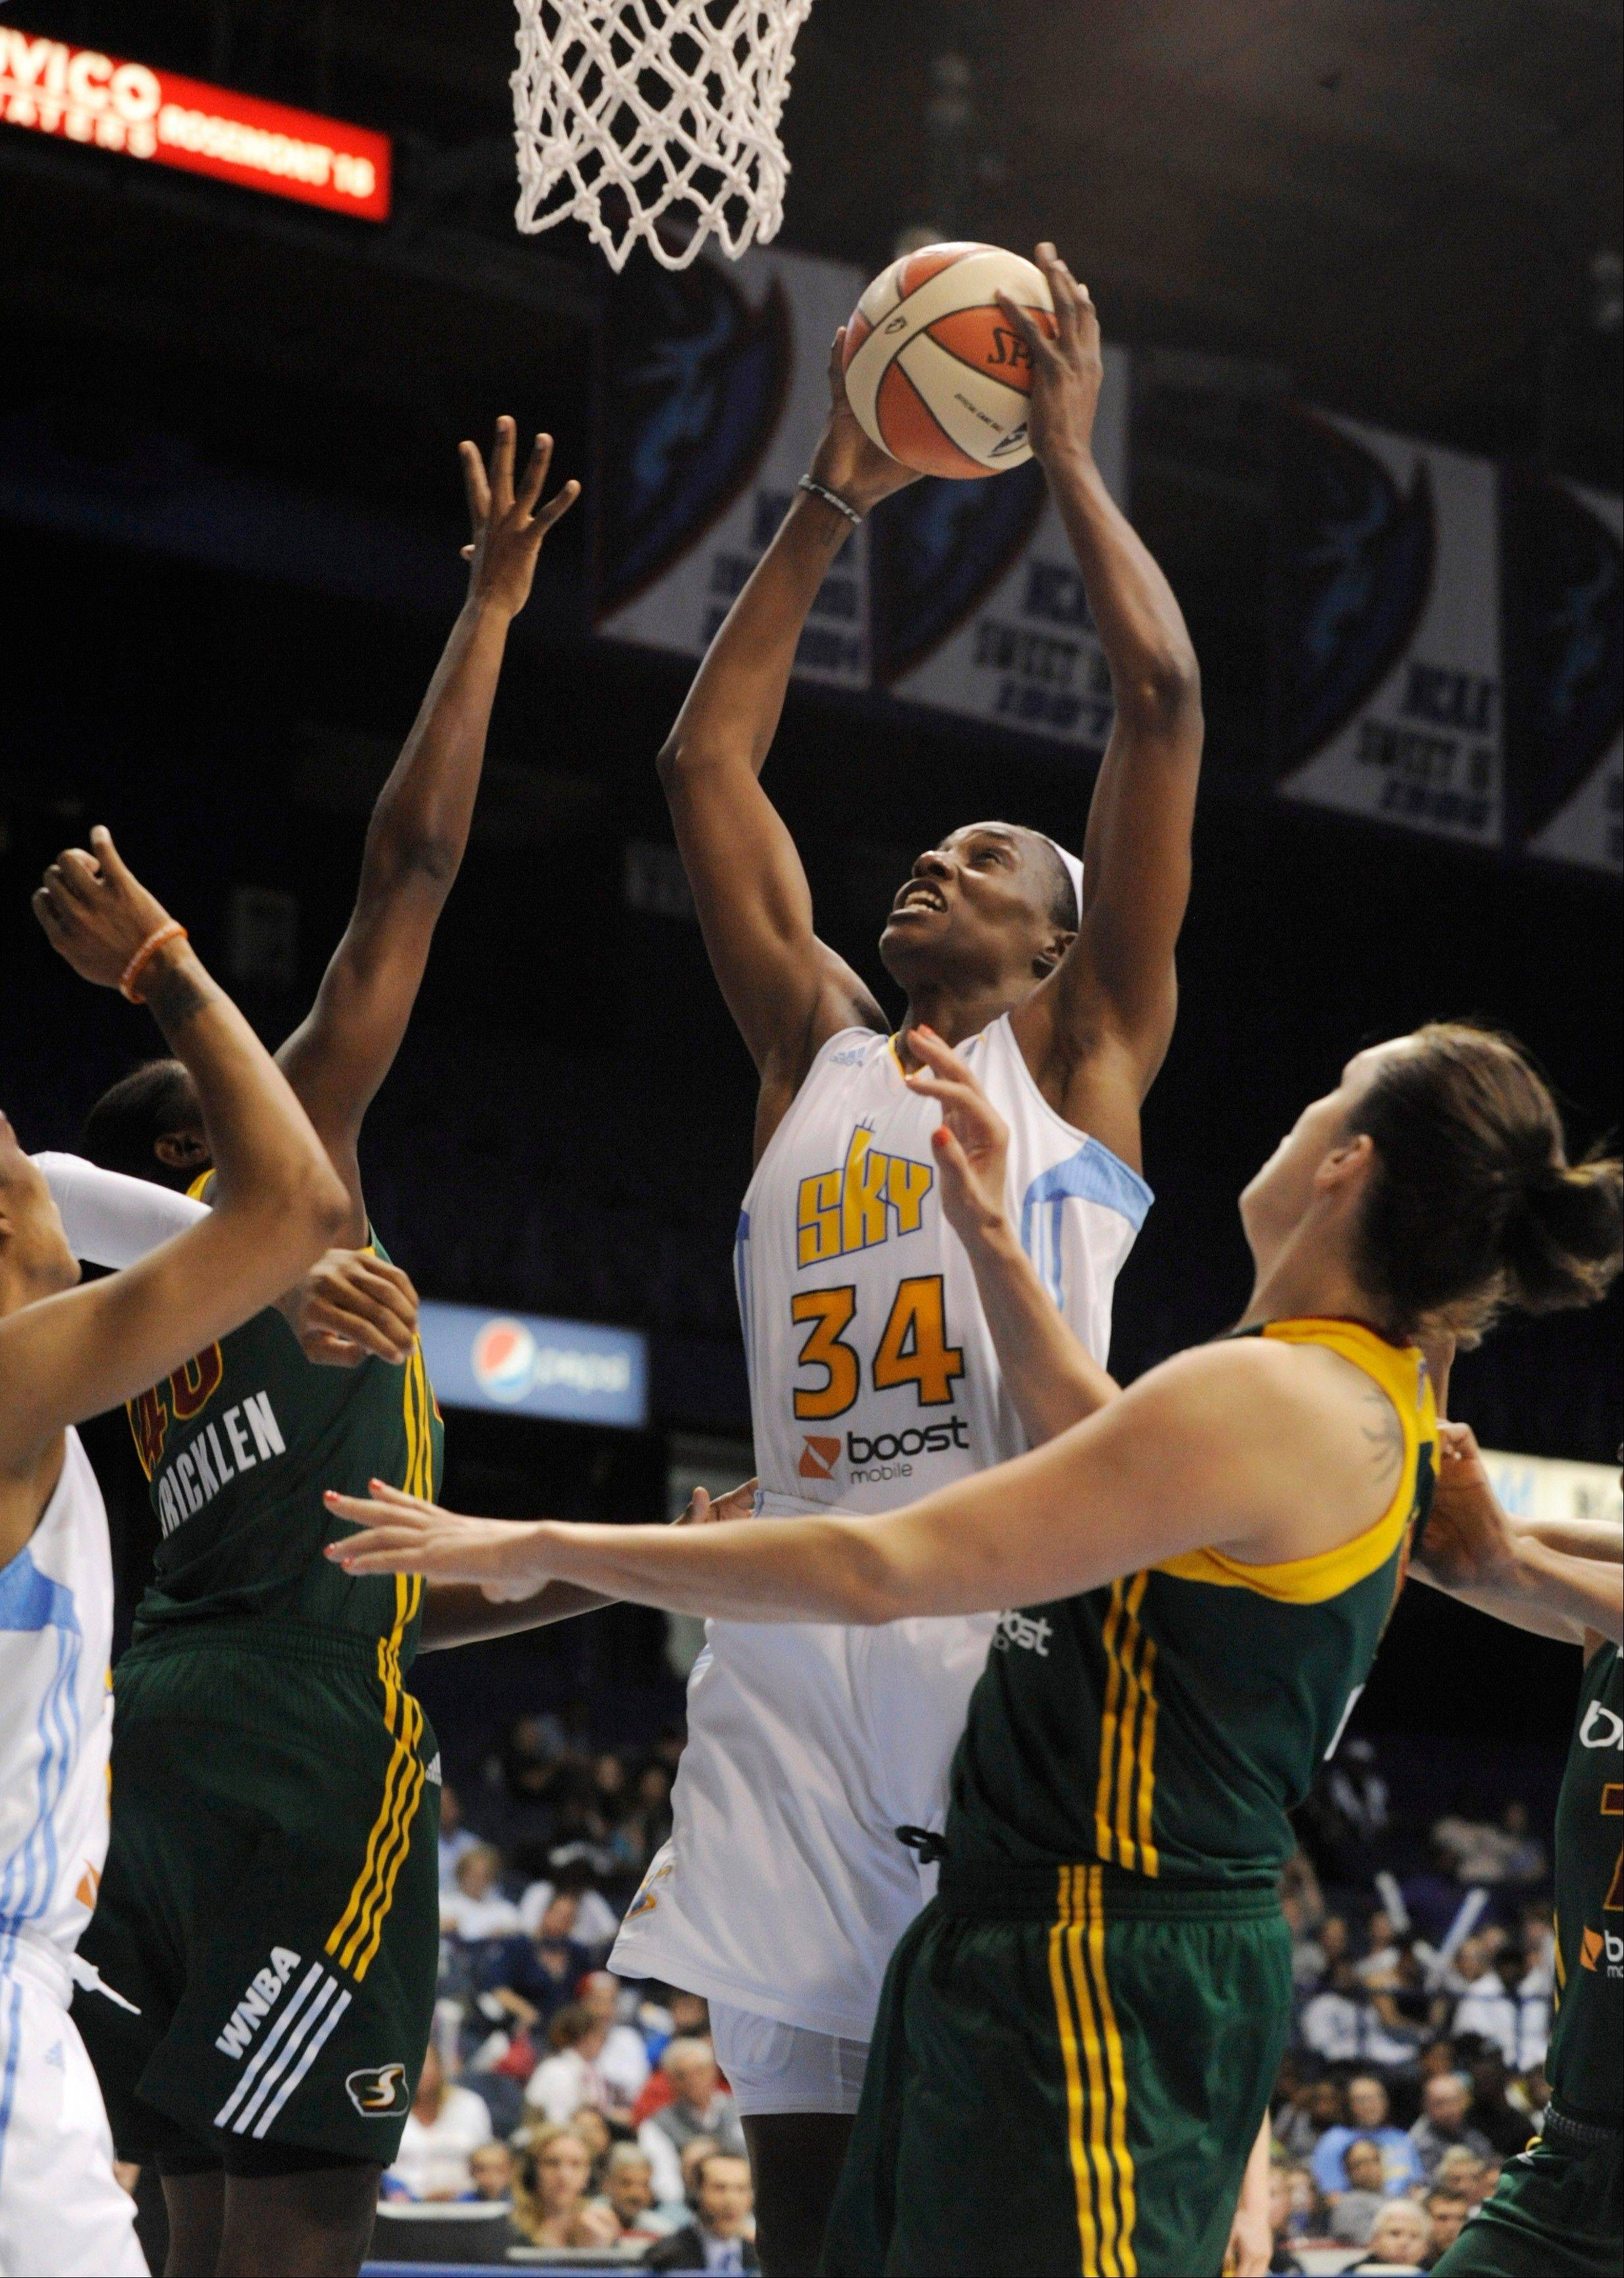 The Sky's Sylvia Fowles is averaging over 18 points per game and leads the WNBA with nearly 15 rebounds per contest.